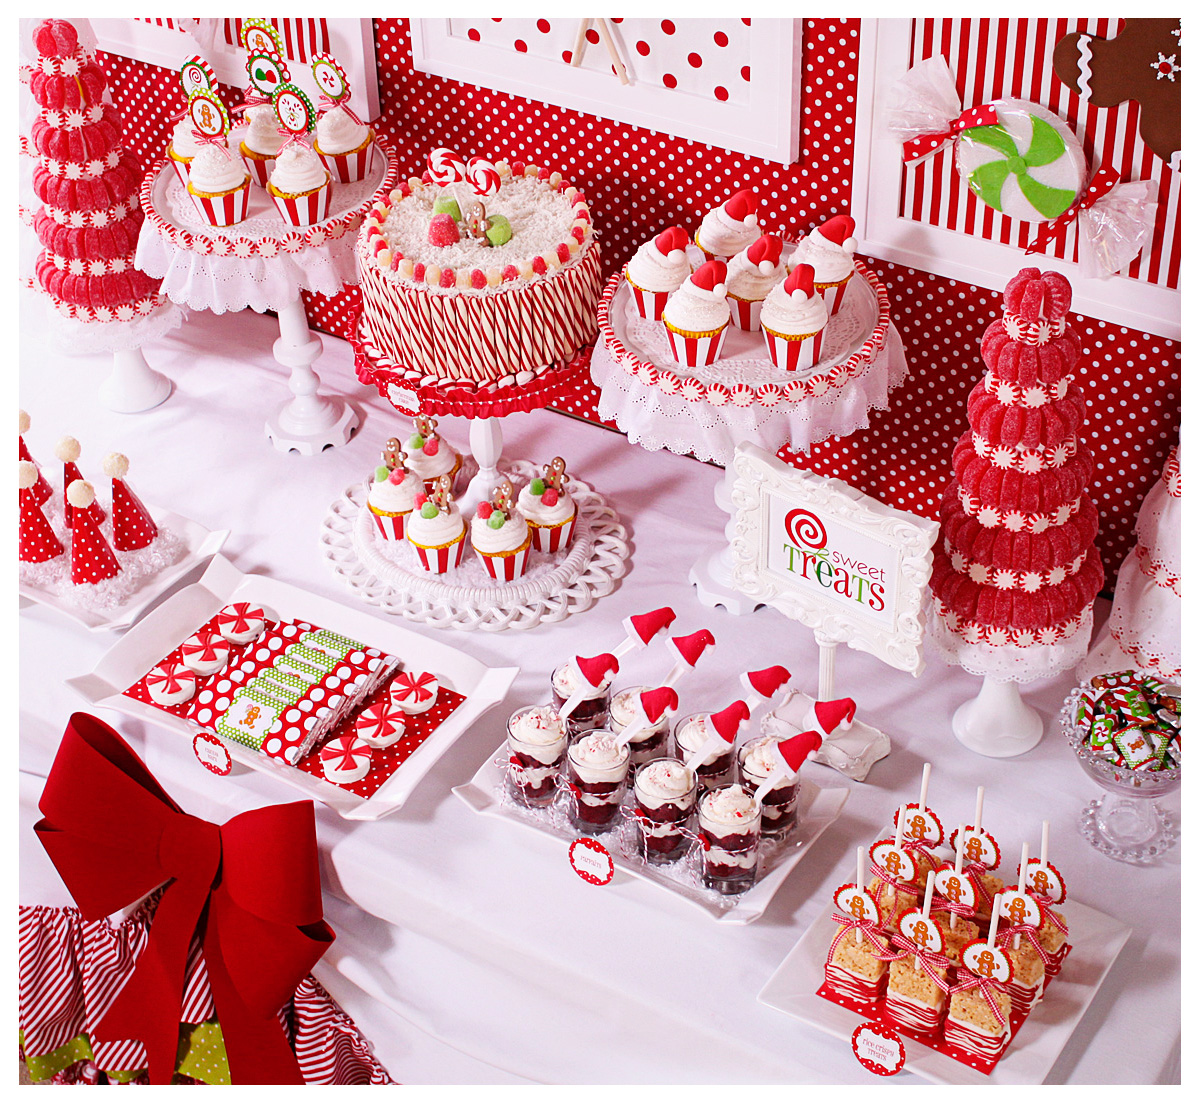 Christmas dessert table decoration ideas - Thursday December 1